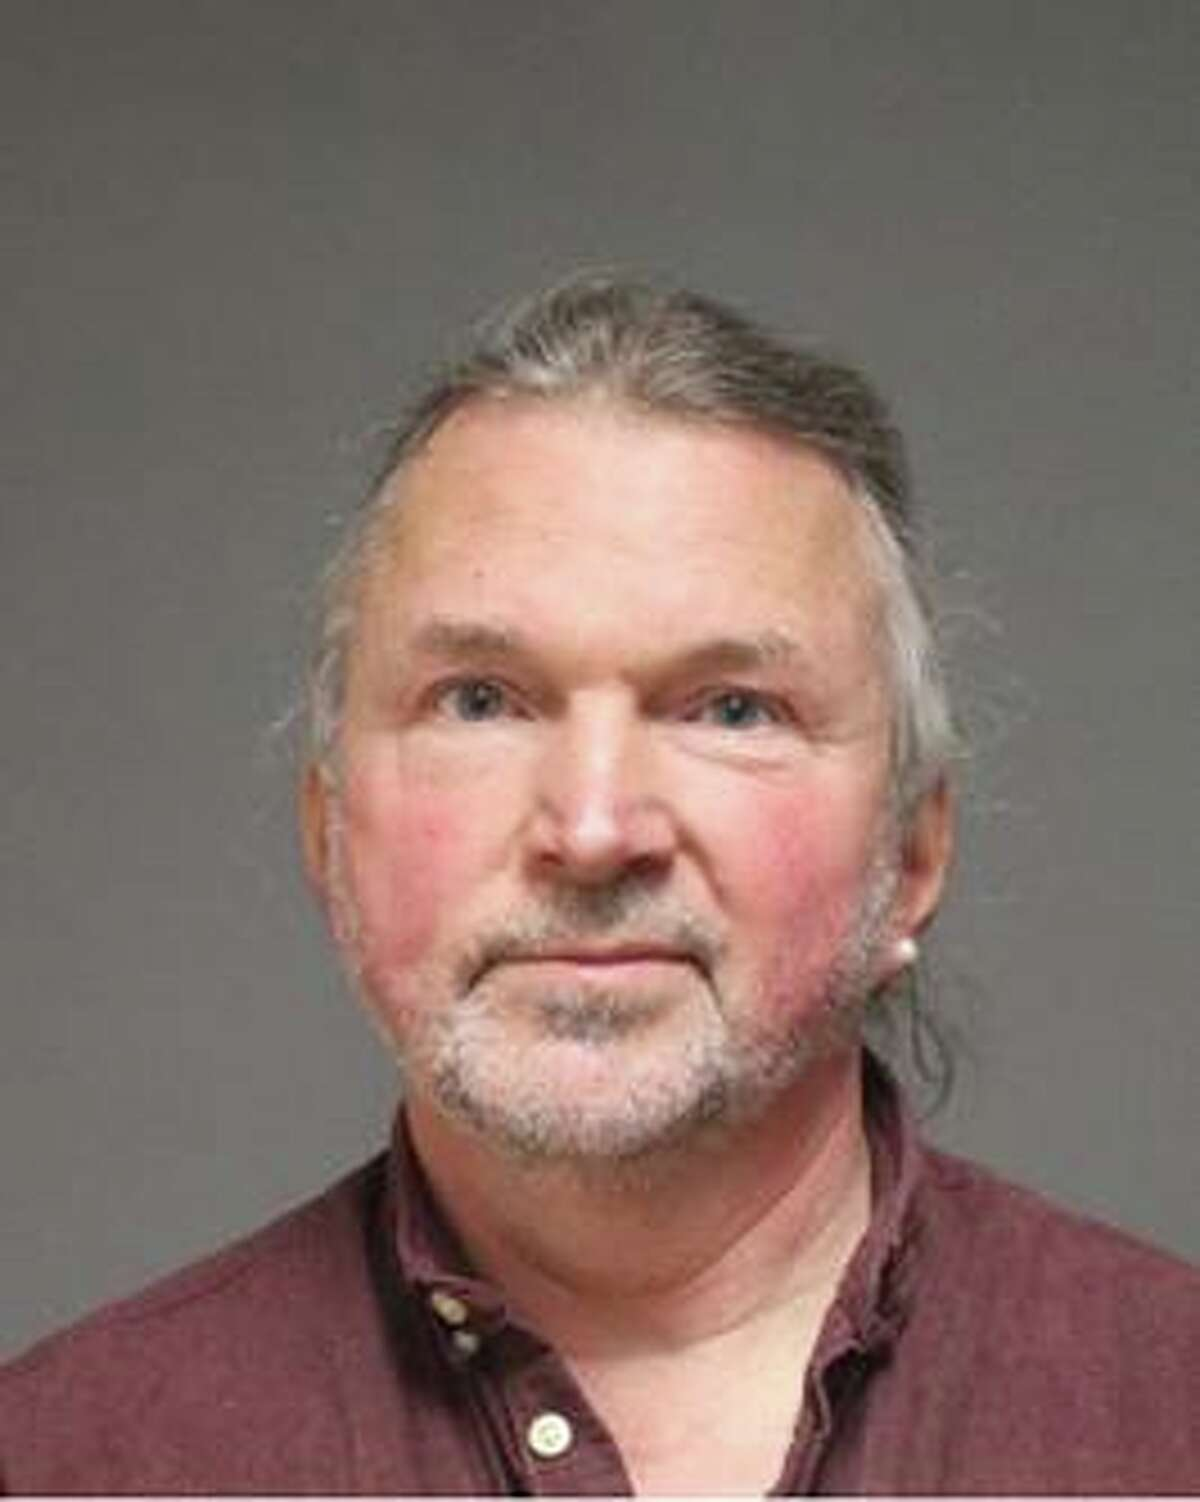 Robert J. Grabarek, an LEP for Osprey Environmental Engineering that was previously hired by the Town of Fairfield, was arrested by Fairfield Police and charged with illegal disposal of PCB's, and conspiracy to commit illegal disposal of PCB's.